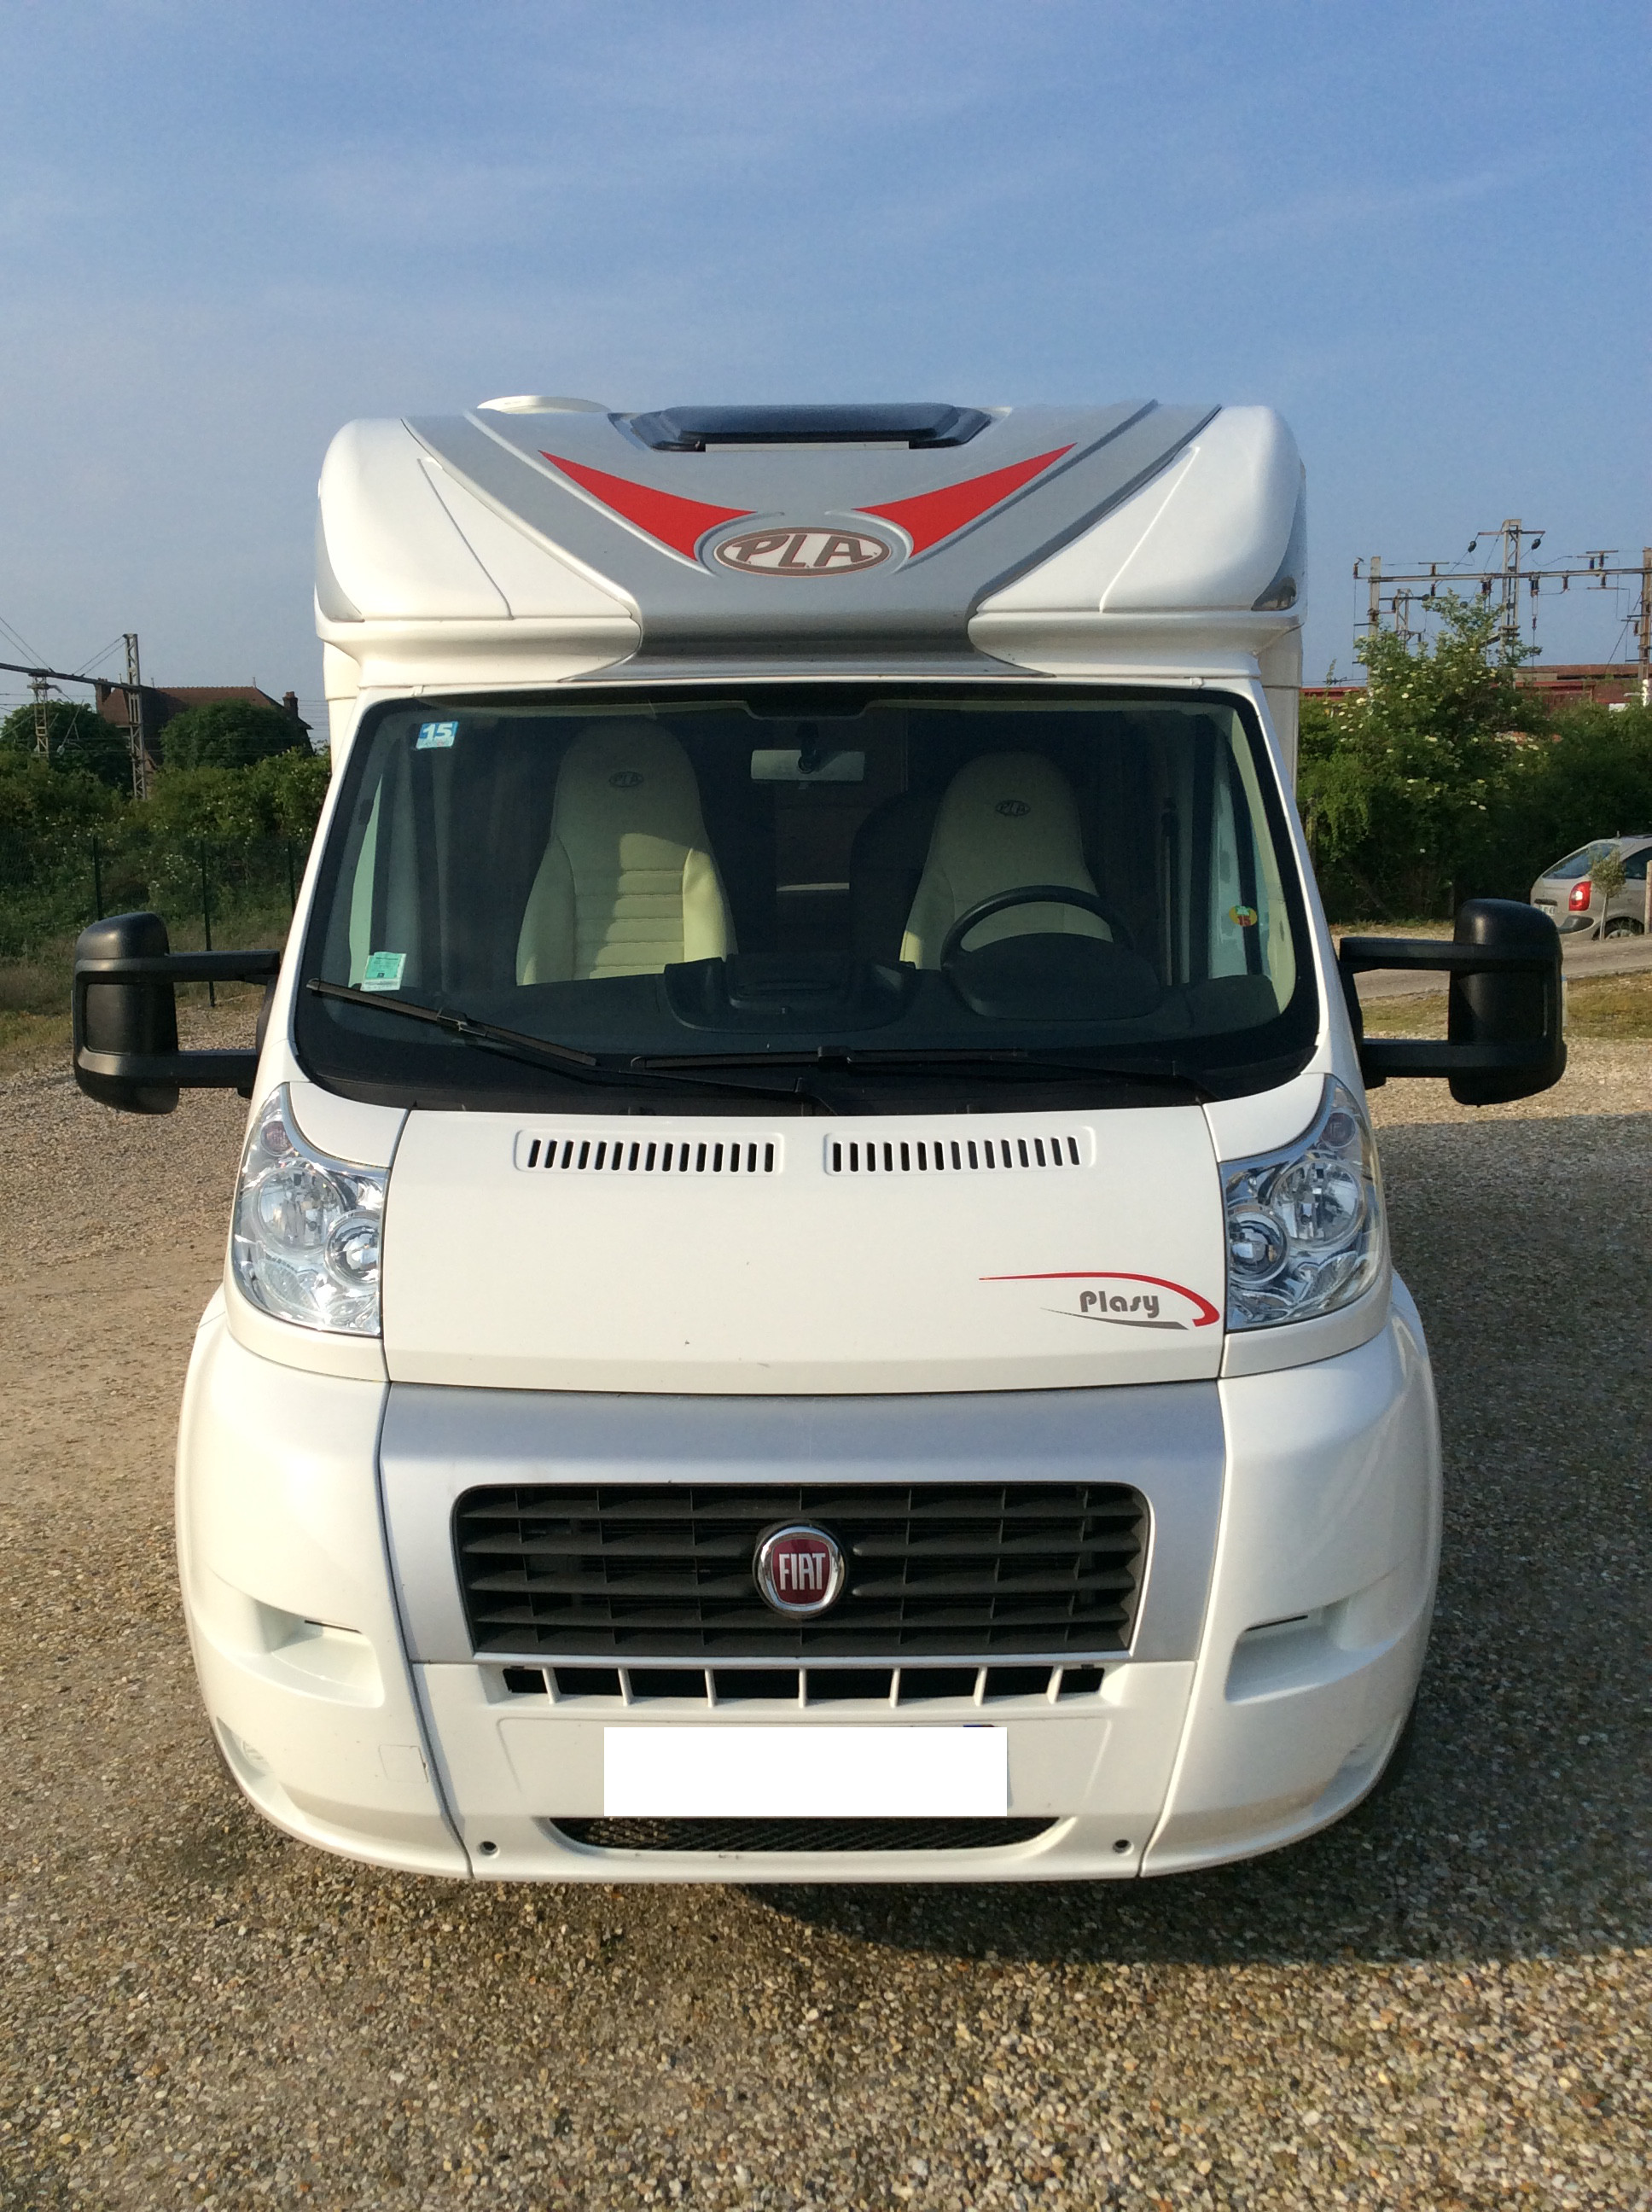 Pla Camper Plasy Hp74 Special Limited Edition - 2